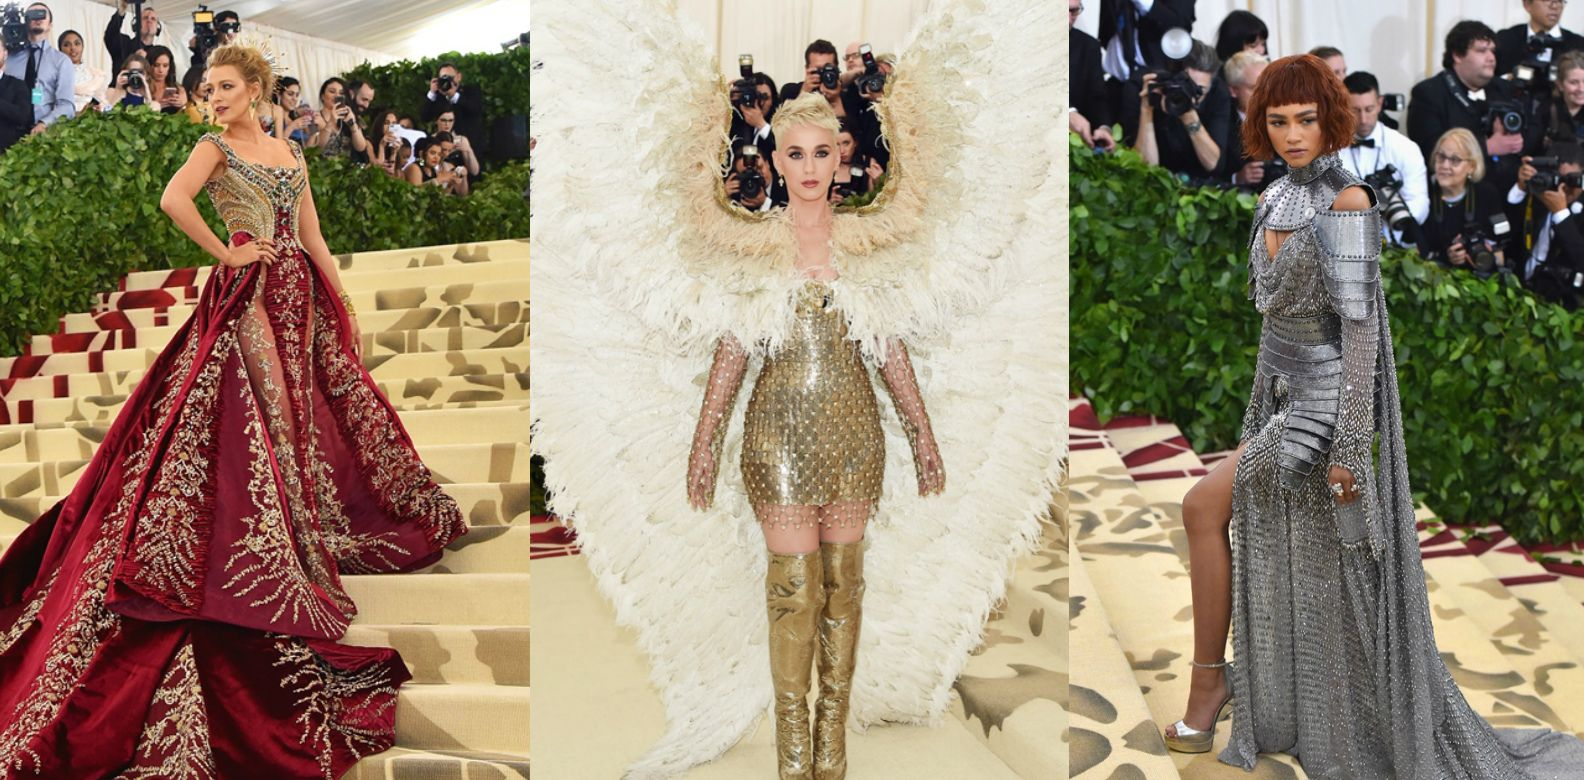 Met Gala 2018: The Good, The Bad And The Downright Outrageous